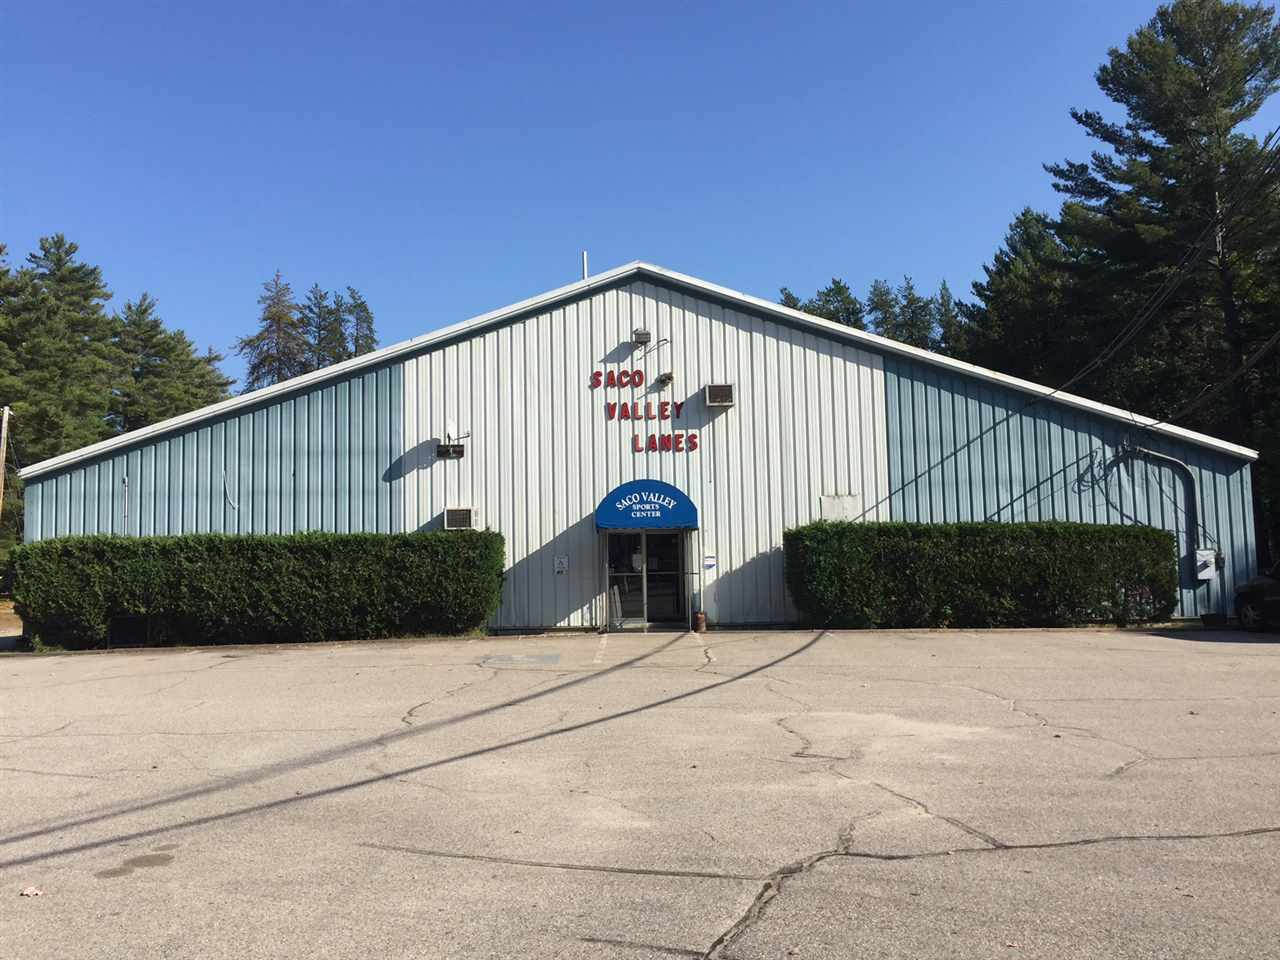 Great business opportunity to continue the operation of this successful Sport Center in Fryeburg, Maine or to develop your own business opportunity in this highly visibile and great location.  The 12,000 square feet building was built in 1980. It features 16 rock maple bowling lanes with overhead electric score keeping, several coin operated games, a 26 seat snack bar; and on the second floor are three fully simulated golf games to keep the golfers entertained during the winter months and to practice during the summer before going to the golf course. The owner has operated the current business for over 35 years; the location is fabulous, the size of the lot and the size of building makes this commercial location conducive to many other business developments.